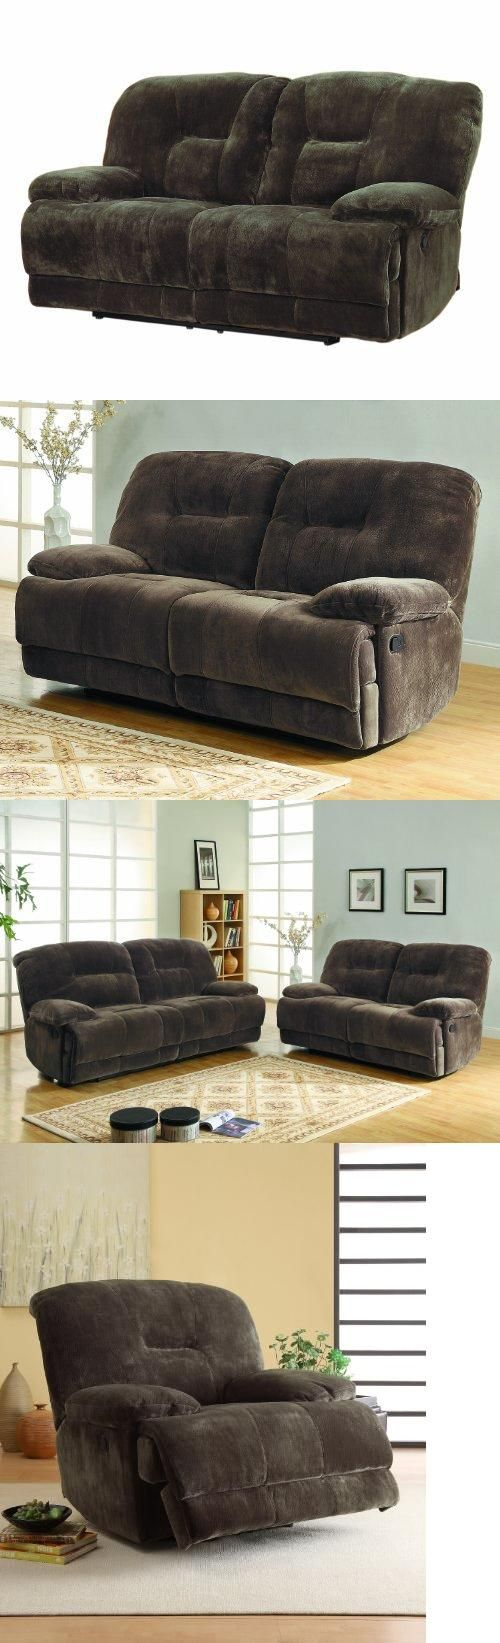 55 best couches images on pinterest chairs chaise lounges and homelegance 9723 2 upholstered double reclining love seat dark brown textured with plush